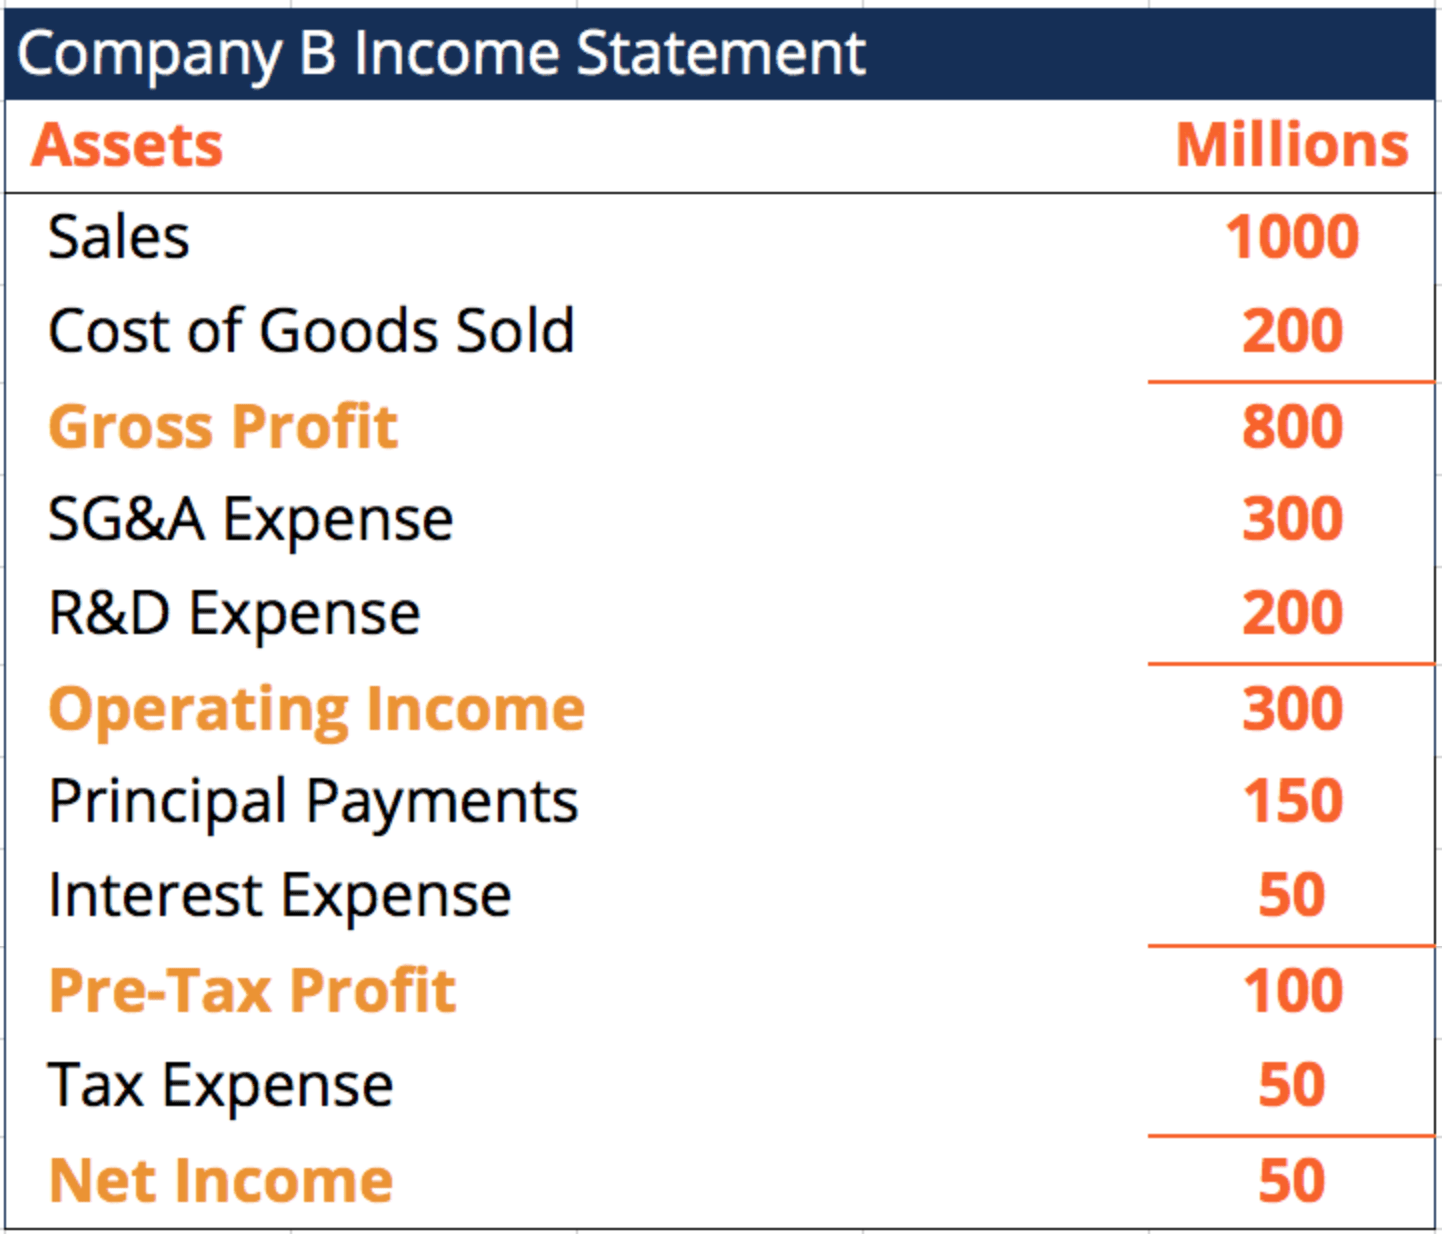 Income Statement for DSCR Example 2